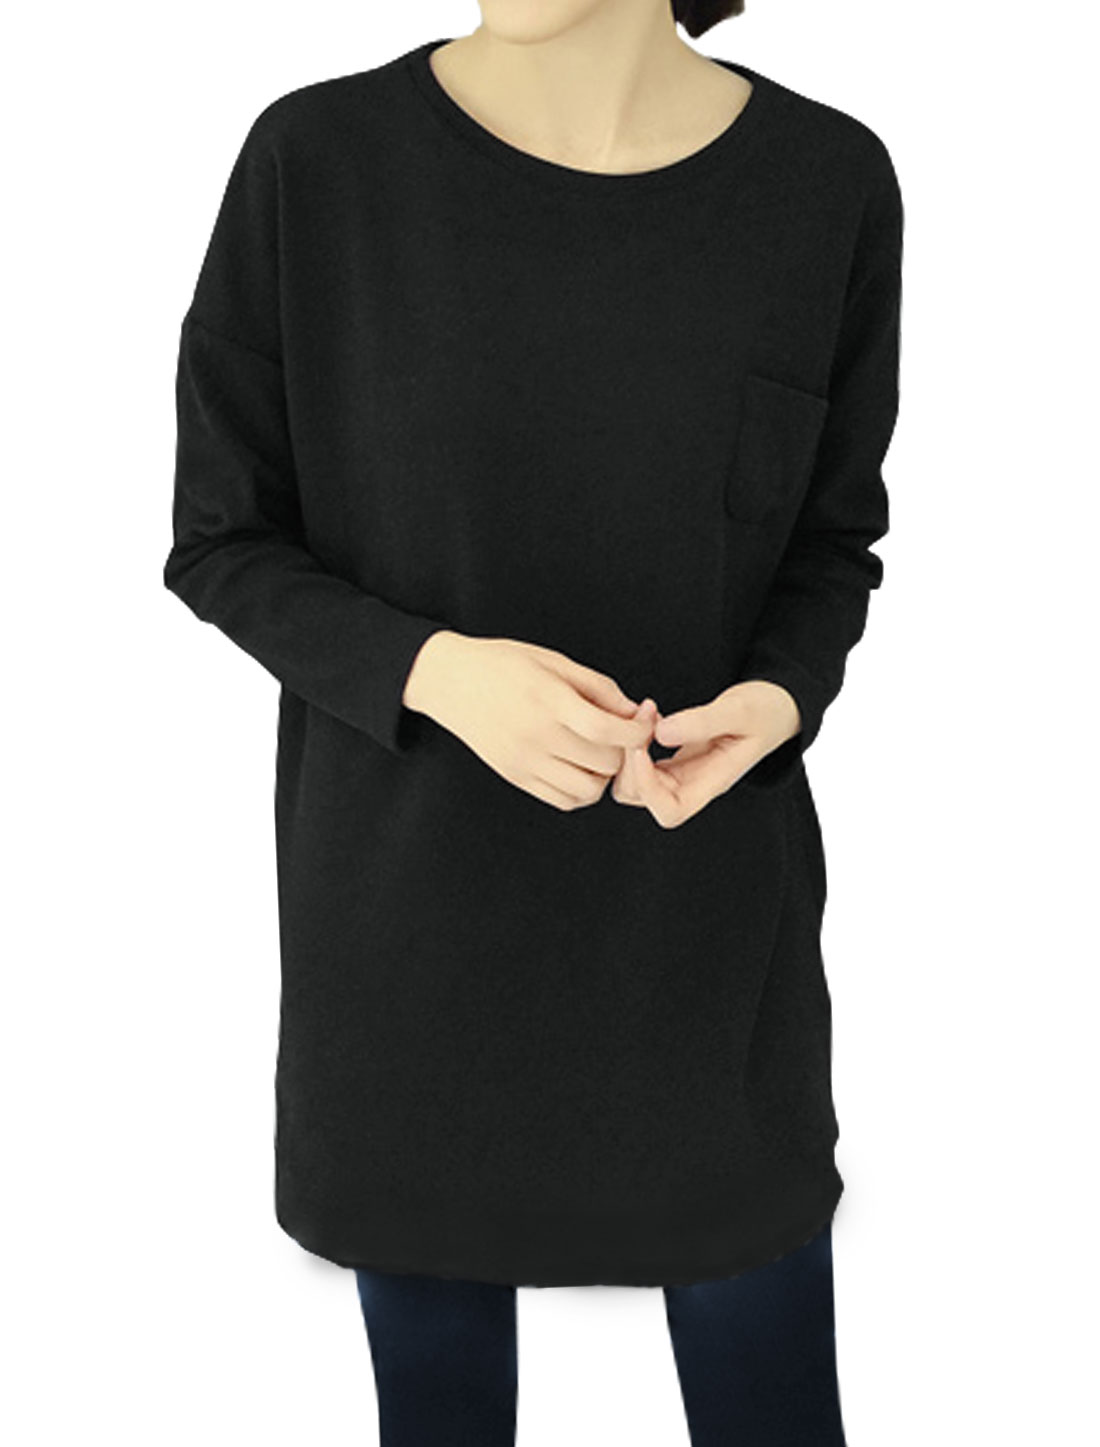 Women Dolman Sleeves Drop Shoulder Loose Tunic Blouse Black S